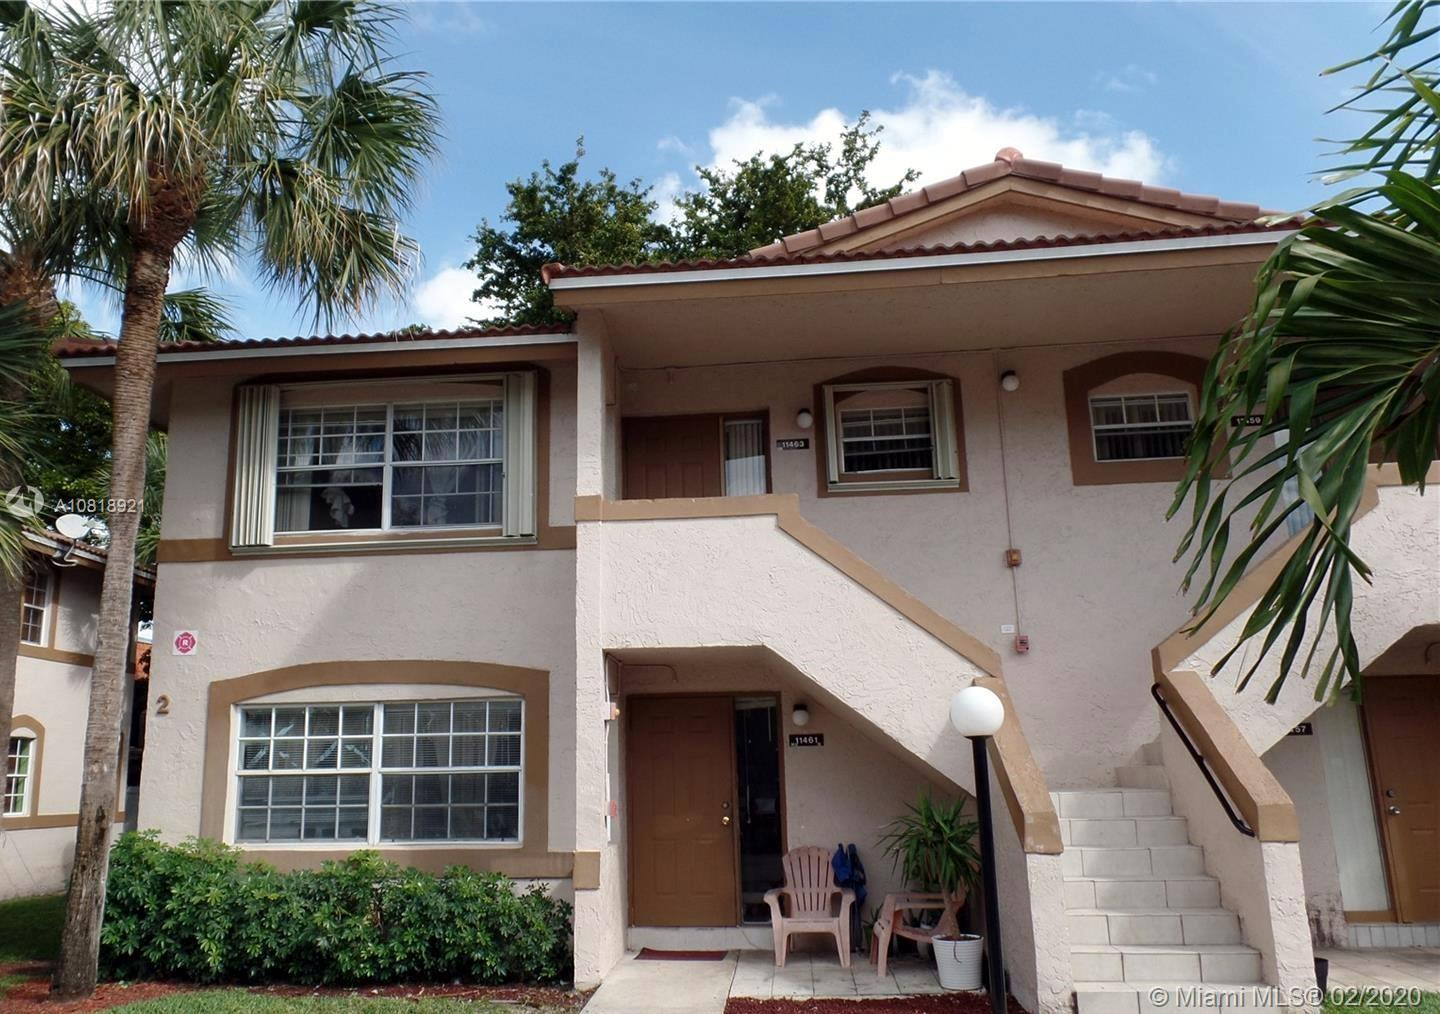 11463 NW 42nd St #11463 For Sale A10818921, FL